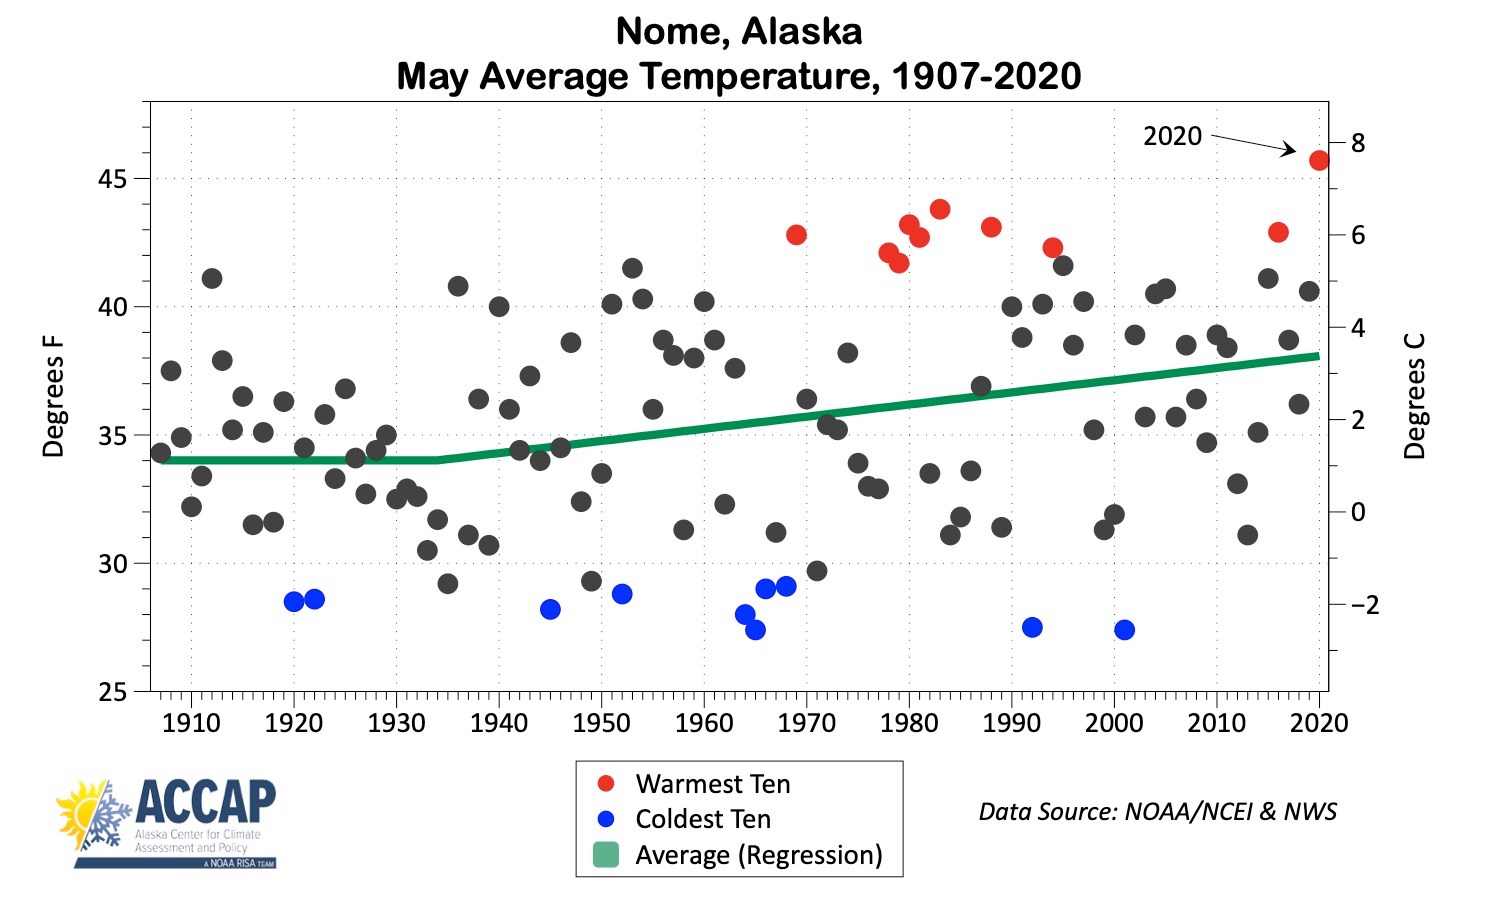 Another Climate Record Broken: May, 2020 was Nome's Warmest May Ever